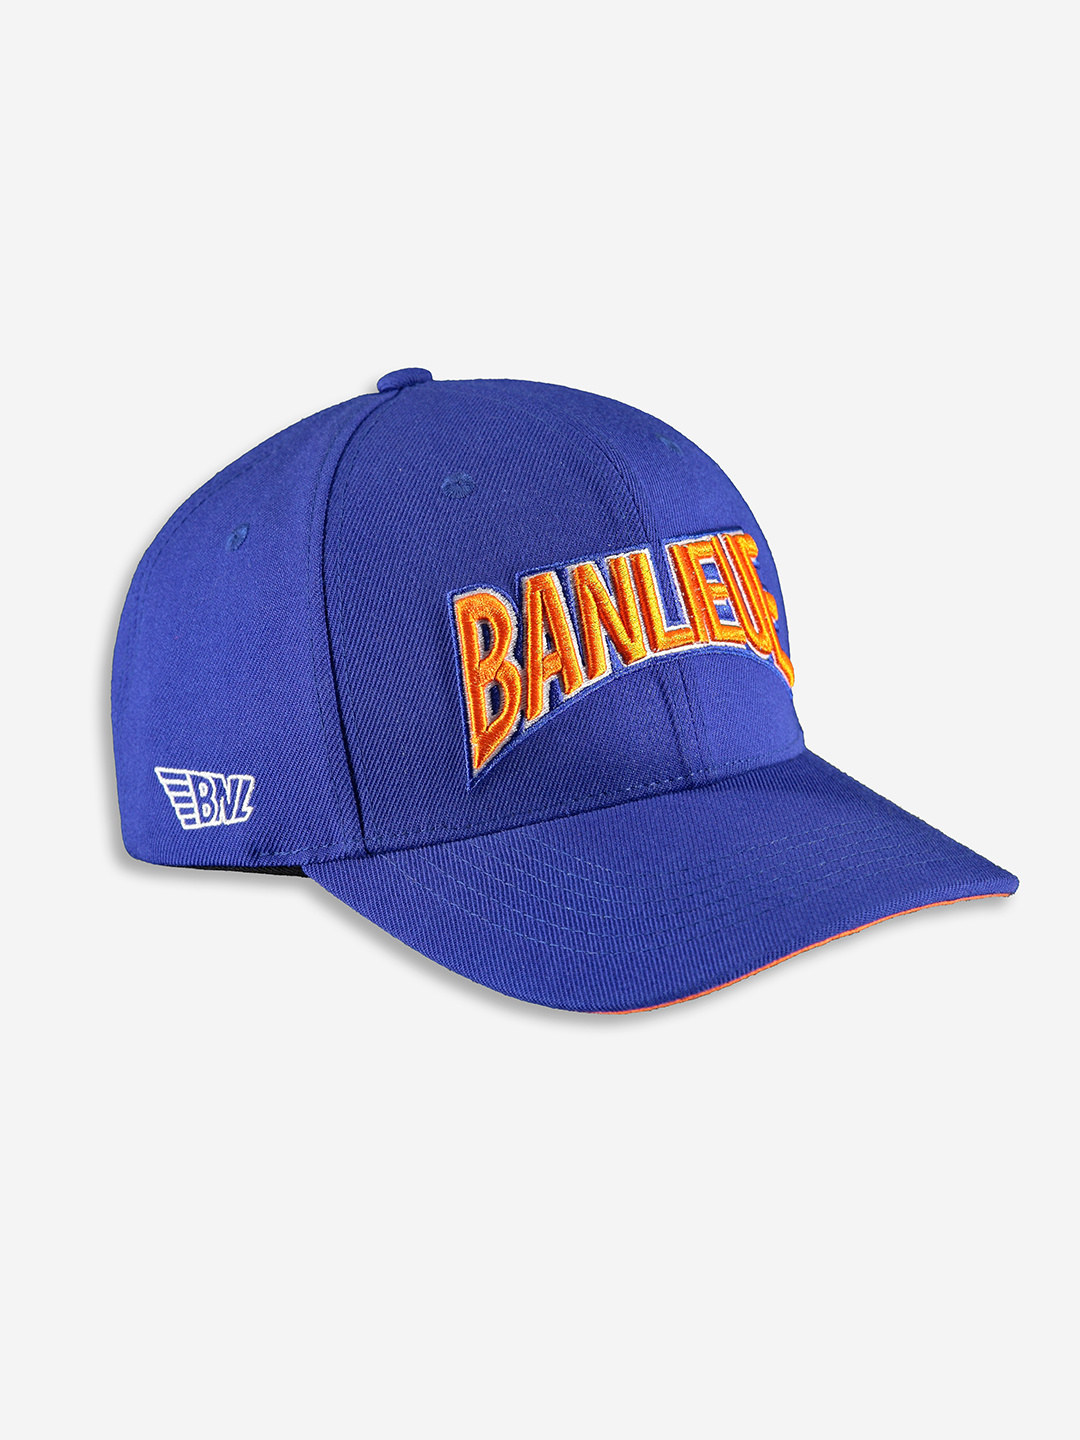 CHAMPION CAP ROYAL BLUE/ORANGE